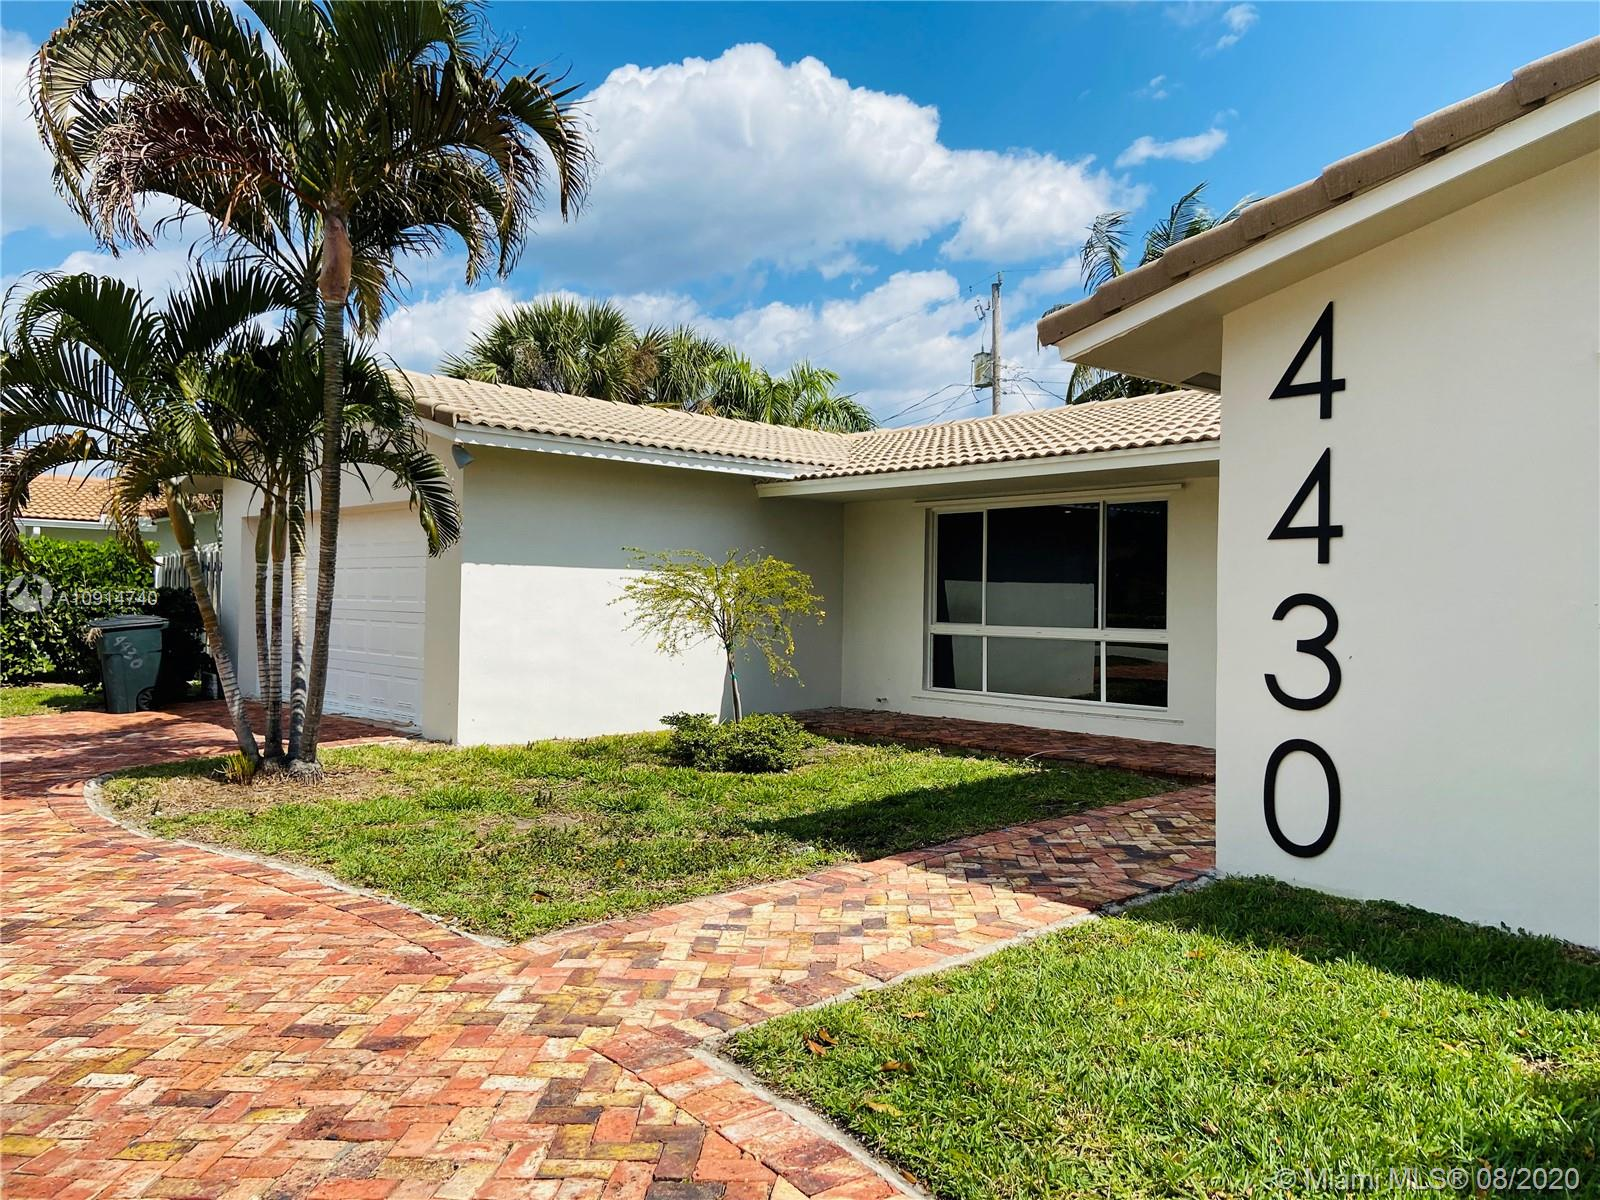 This recently renovated, spacious family home is the exclusive community of Venetian Isles in Lighthouse Point features both modern amenities and character in a fantastic location. No stone was left unturned during the recent remodel, which includes updated porcelain flooring throughout and a brand-new subway tile backsplash, stainless steel appliances , quarts countertop. Enjoy the proximity to the beach, fine dining, A+ schools , the marina and shopping. Don't miss out on this captivating home.Home is tenant occupied at $3250